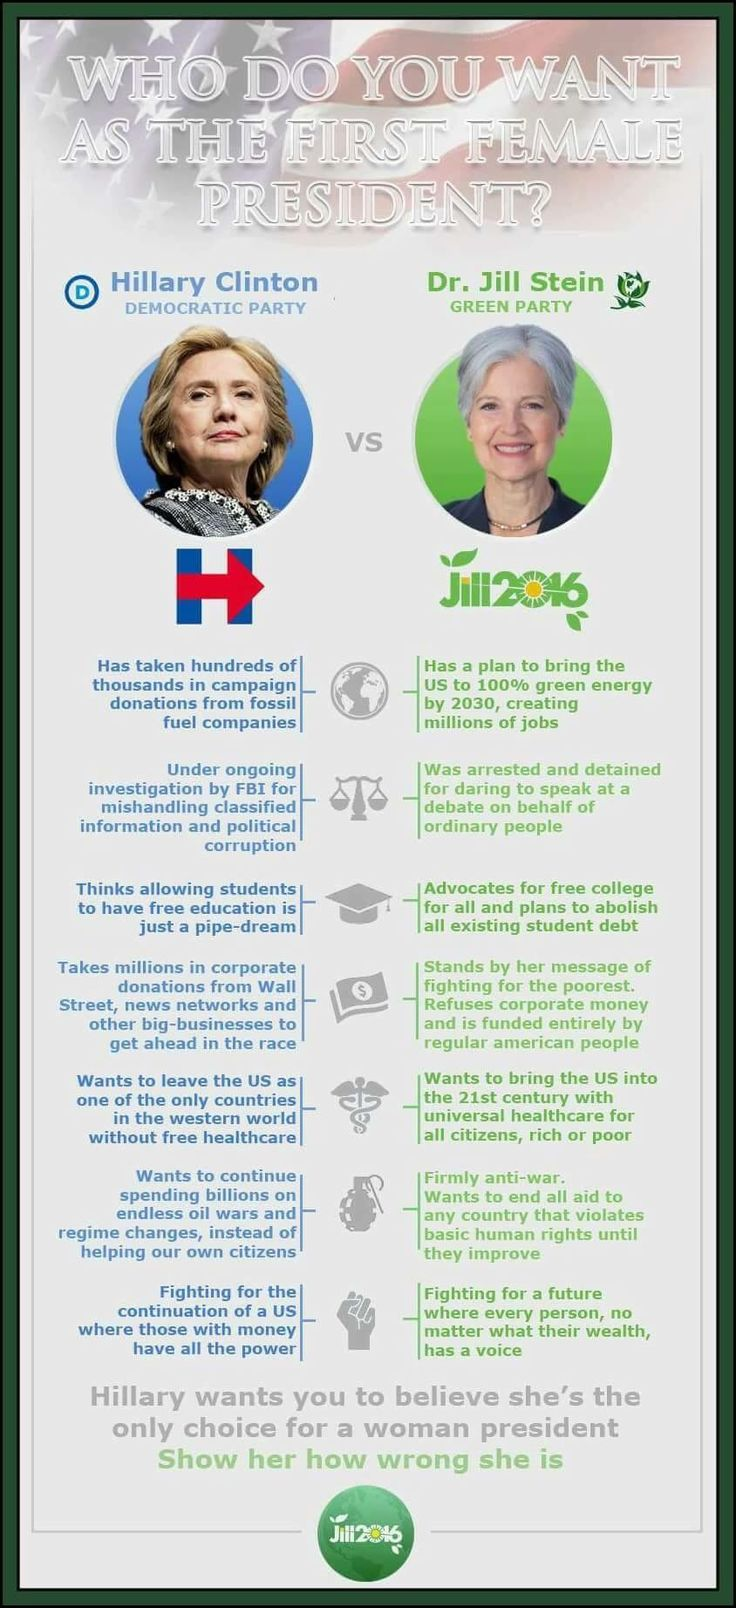 Comparing the two women running for President of the United States in 2016. Hillary Clinton and Dr. Jill Stein. #JillStein2016 #ImWithHer #greenparty